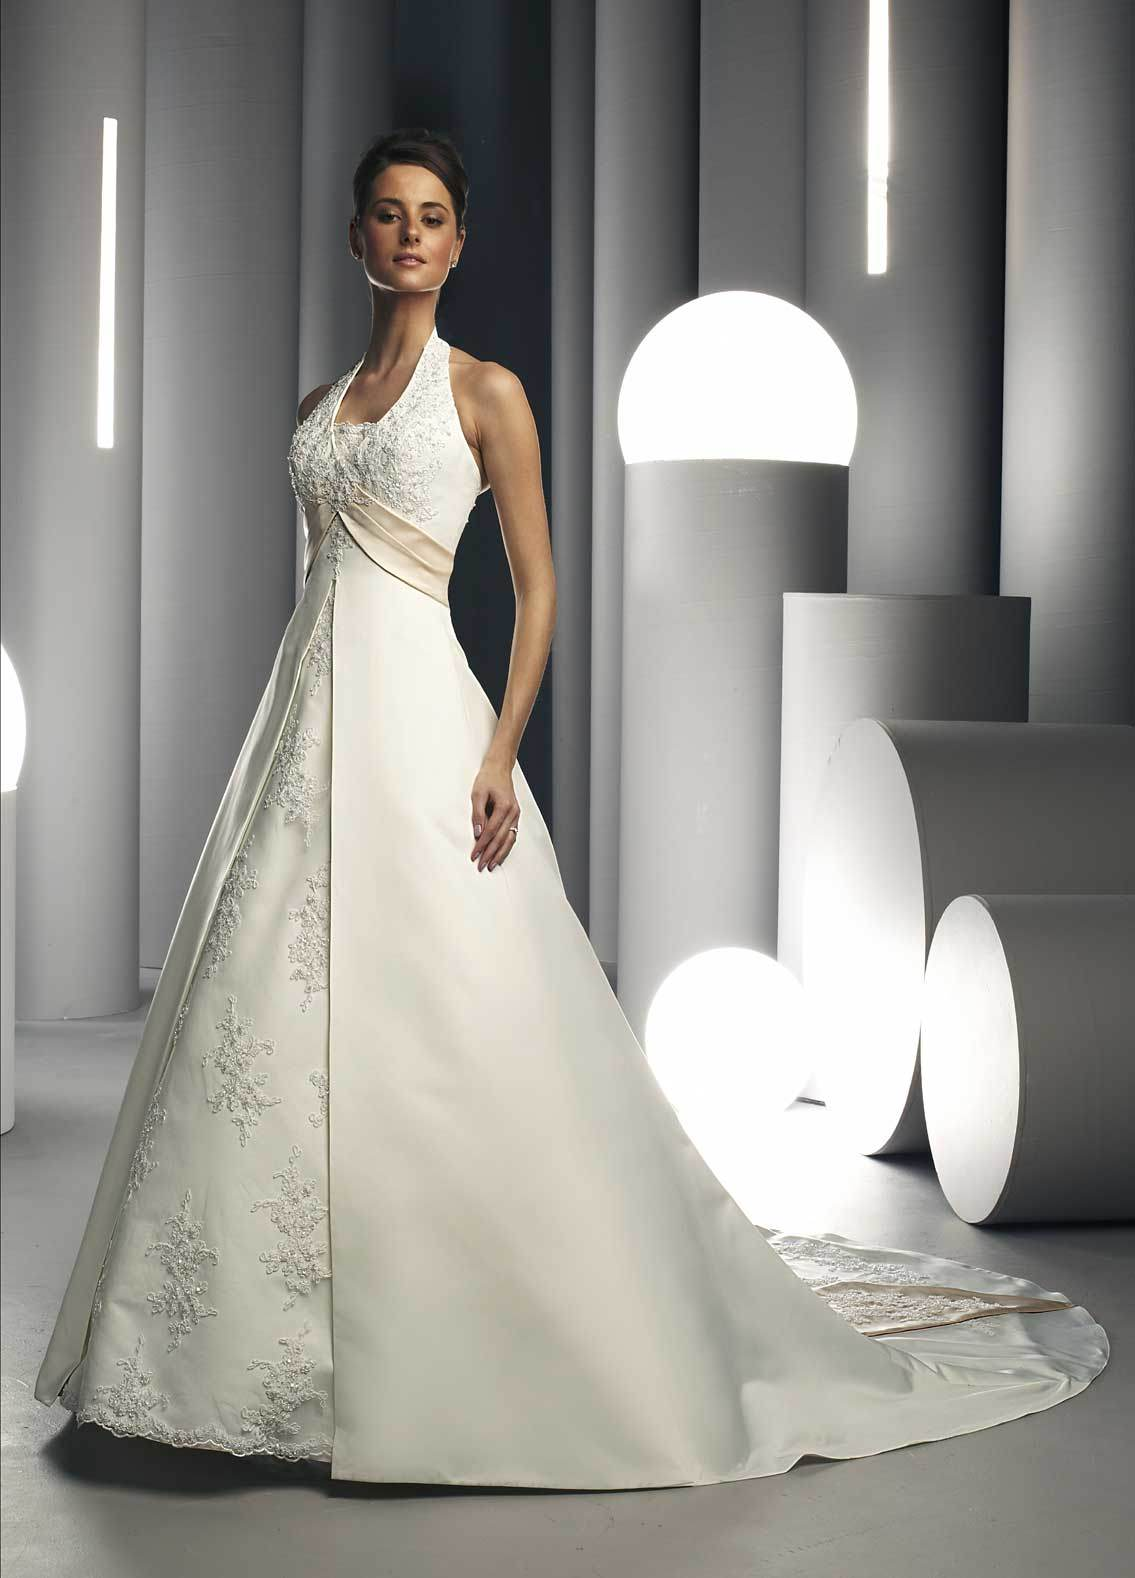 China 2010 new wedding dresses and wedding gowns davic006 for New wedding dress styles